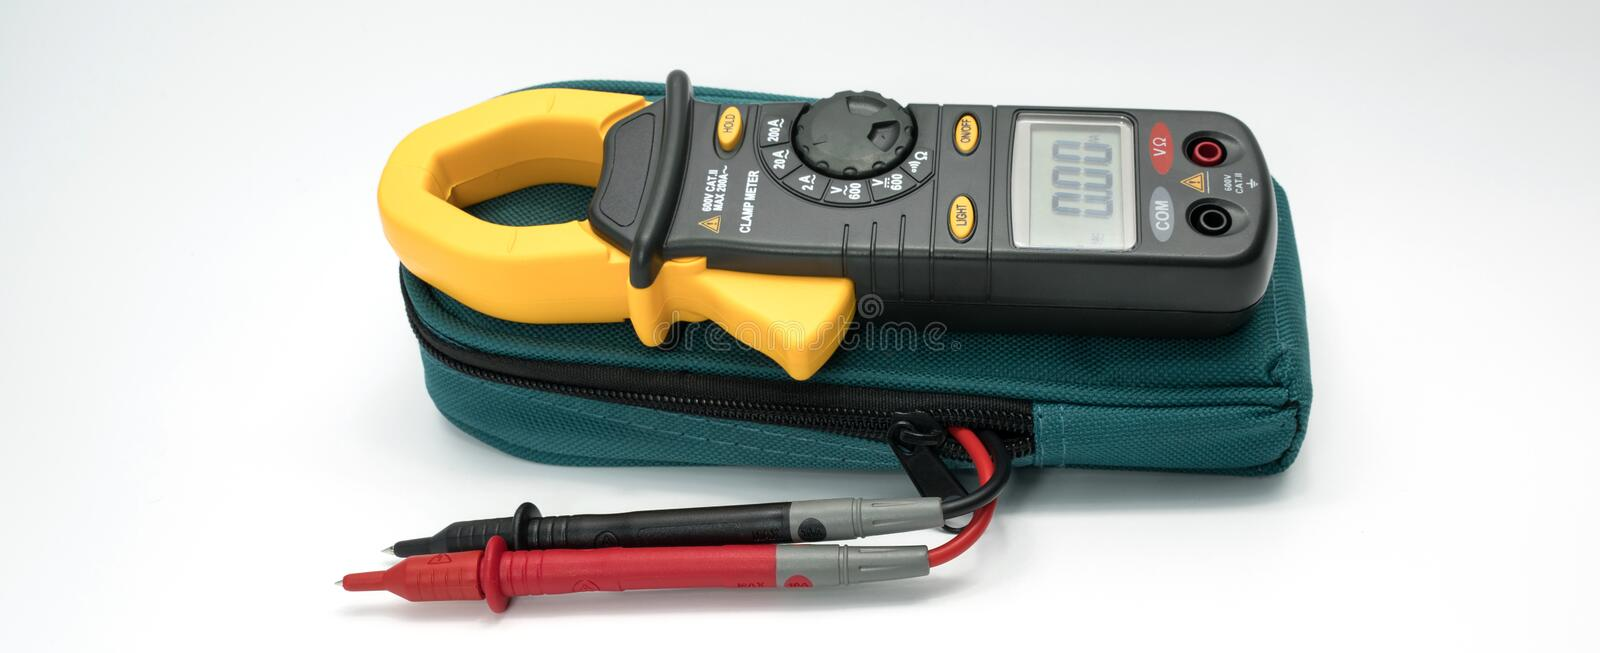 Digital clamp meter with probes stock photo